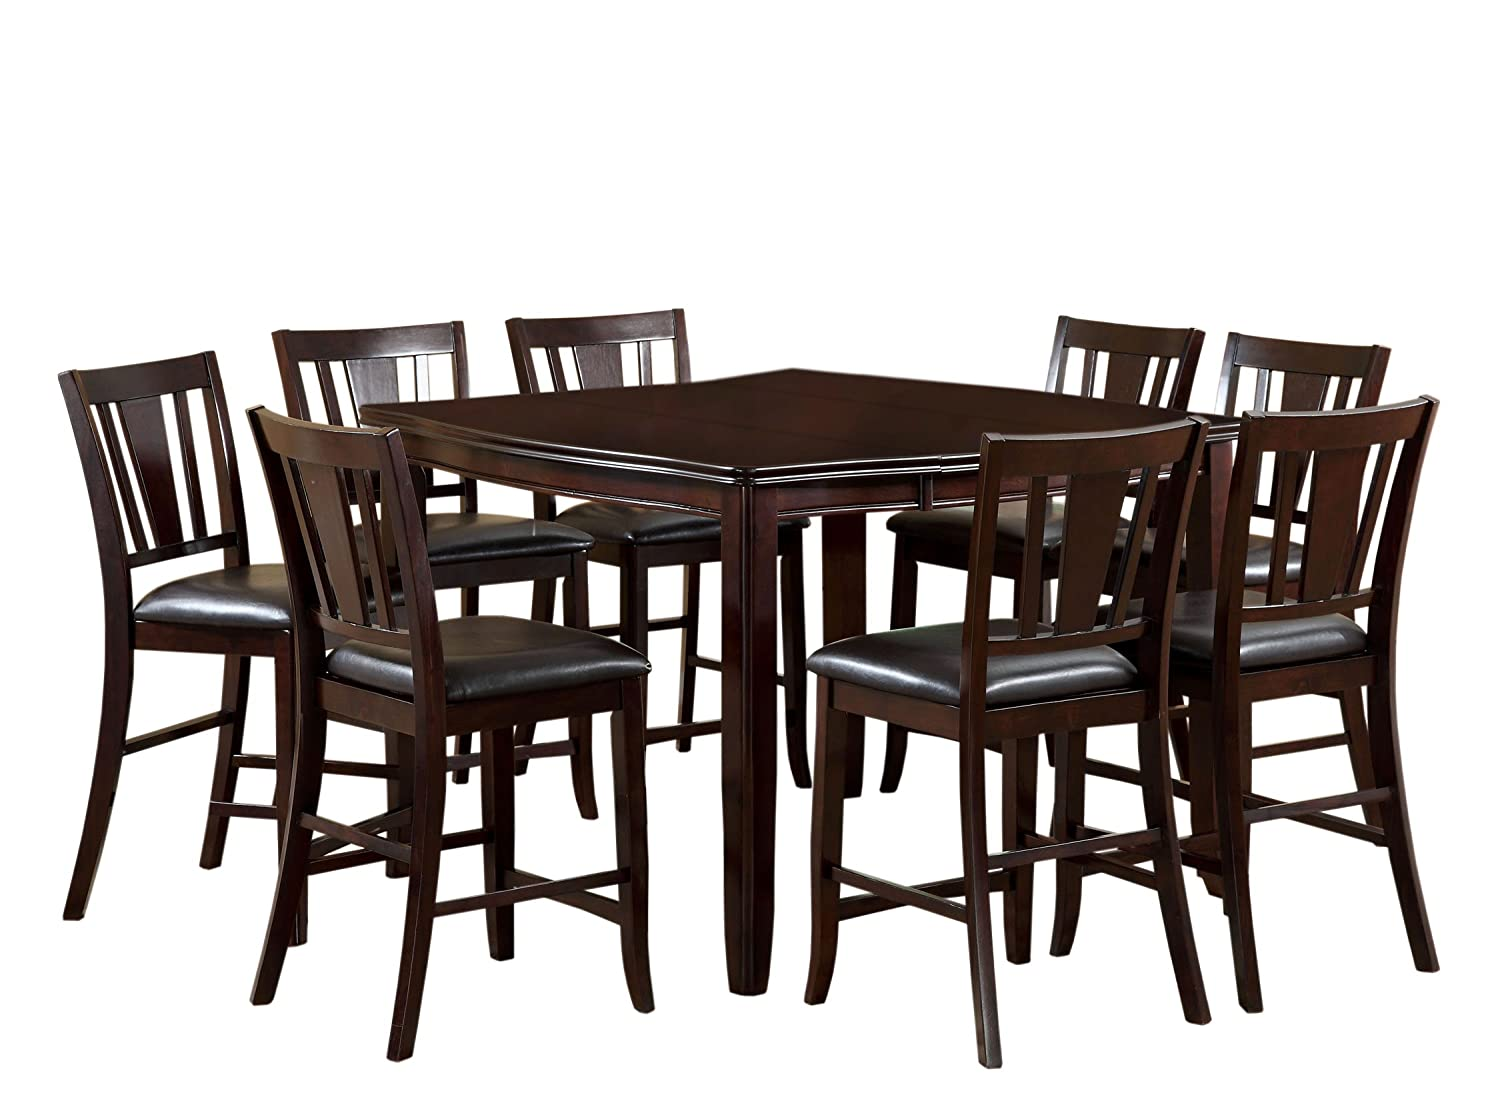 amazon com furniture of america anlow 7 piece counter height amazon com furniture of america anlow 7 piece counter height table set with 16 inch leaf espresso finish kitchen dining